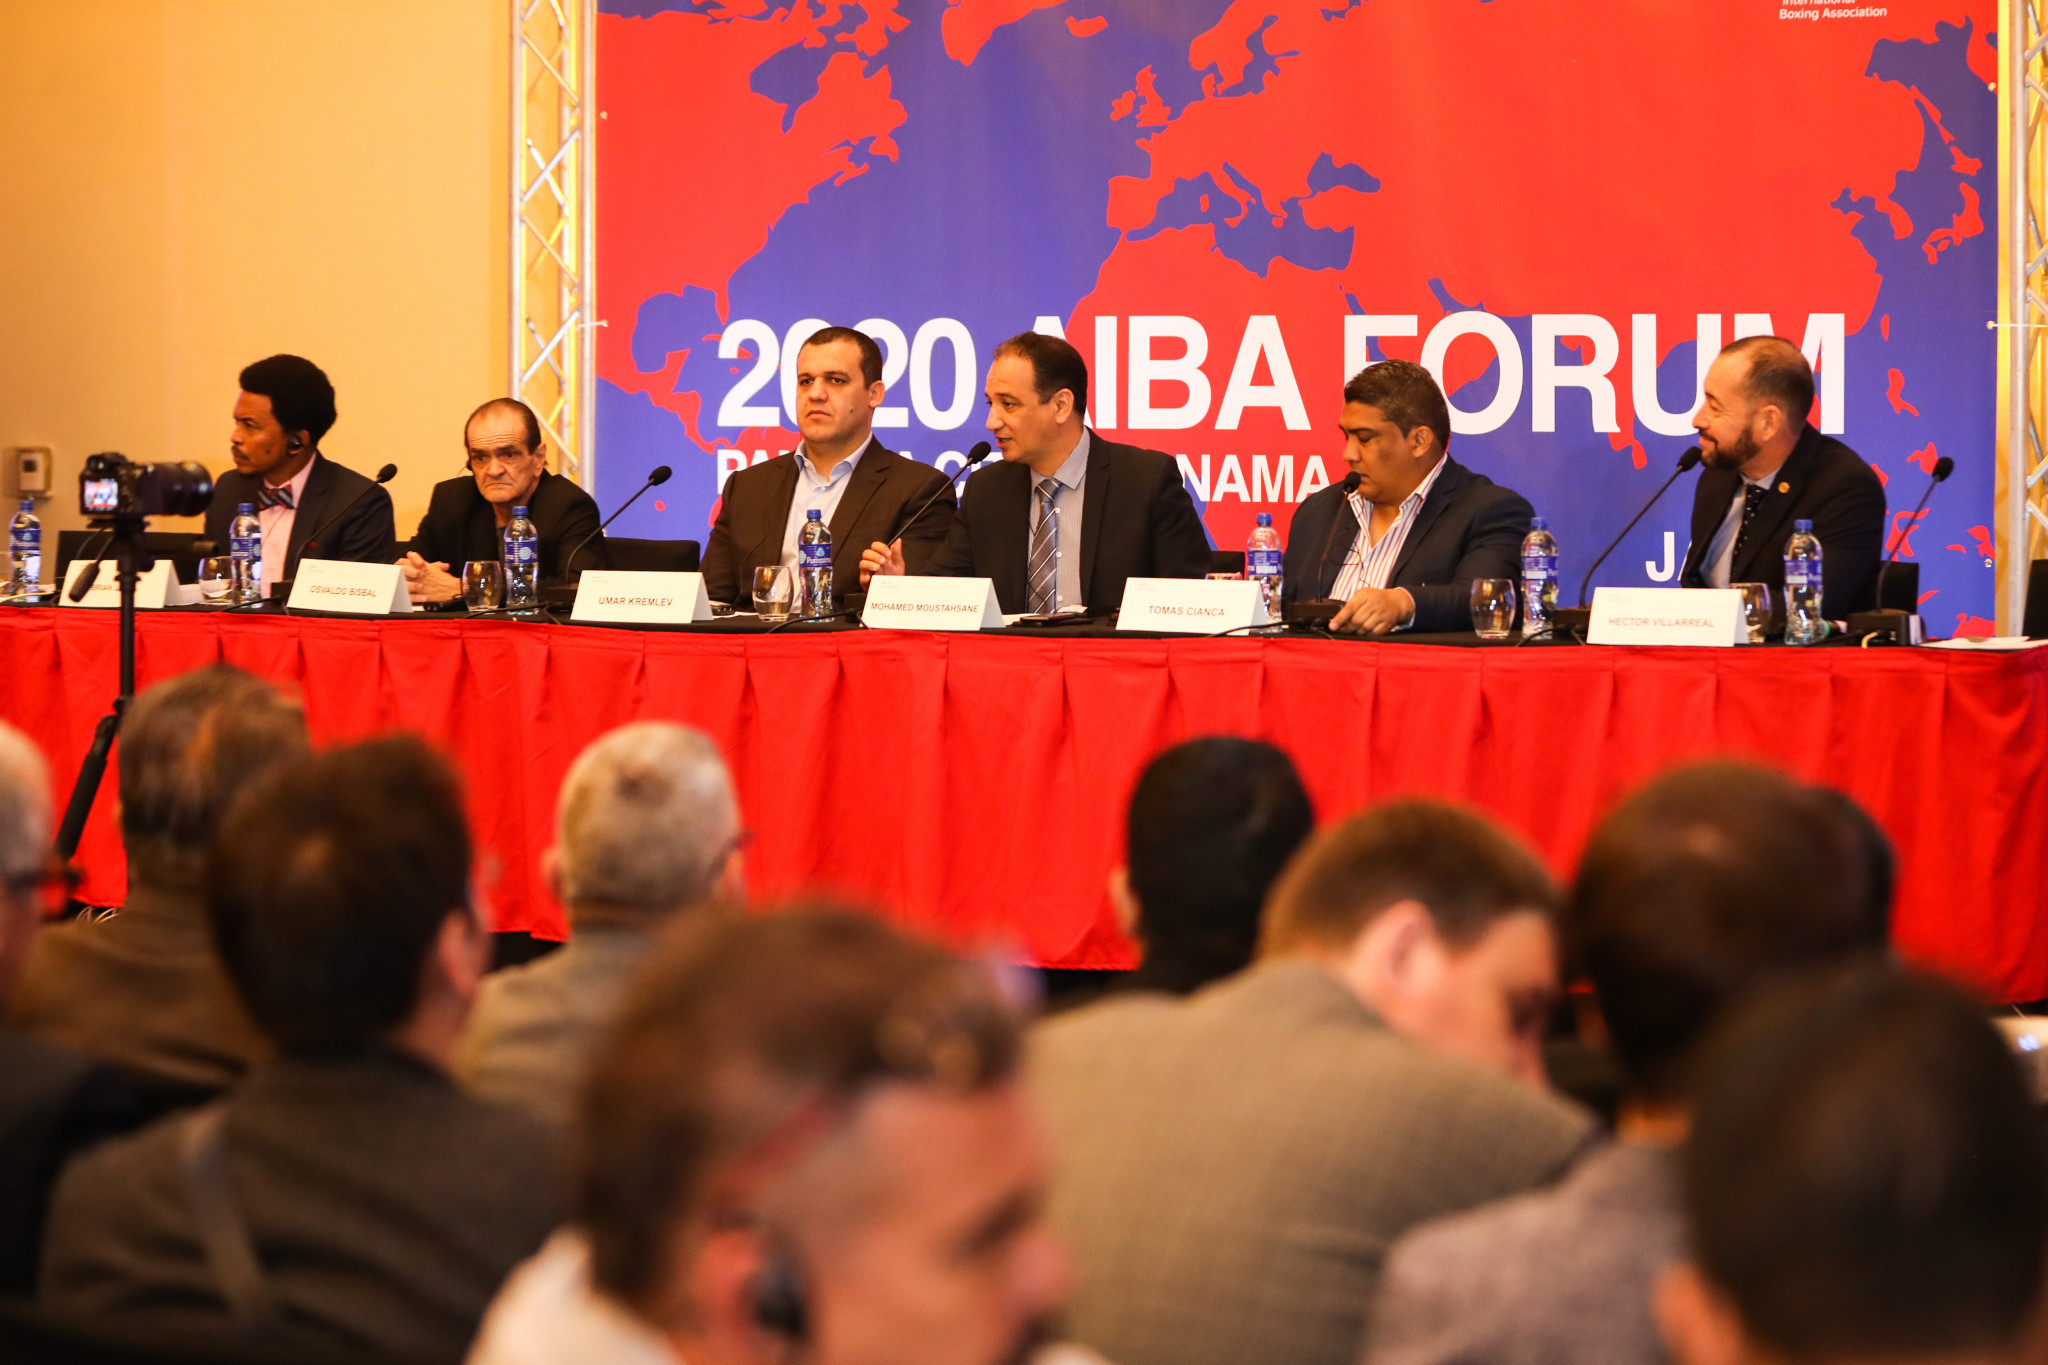 The AIBA Continental Forums, the first of which is currently taking place in Panama City, are intended to create fruitful dialogue with National Federations and Confederations ©AIBA